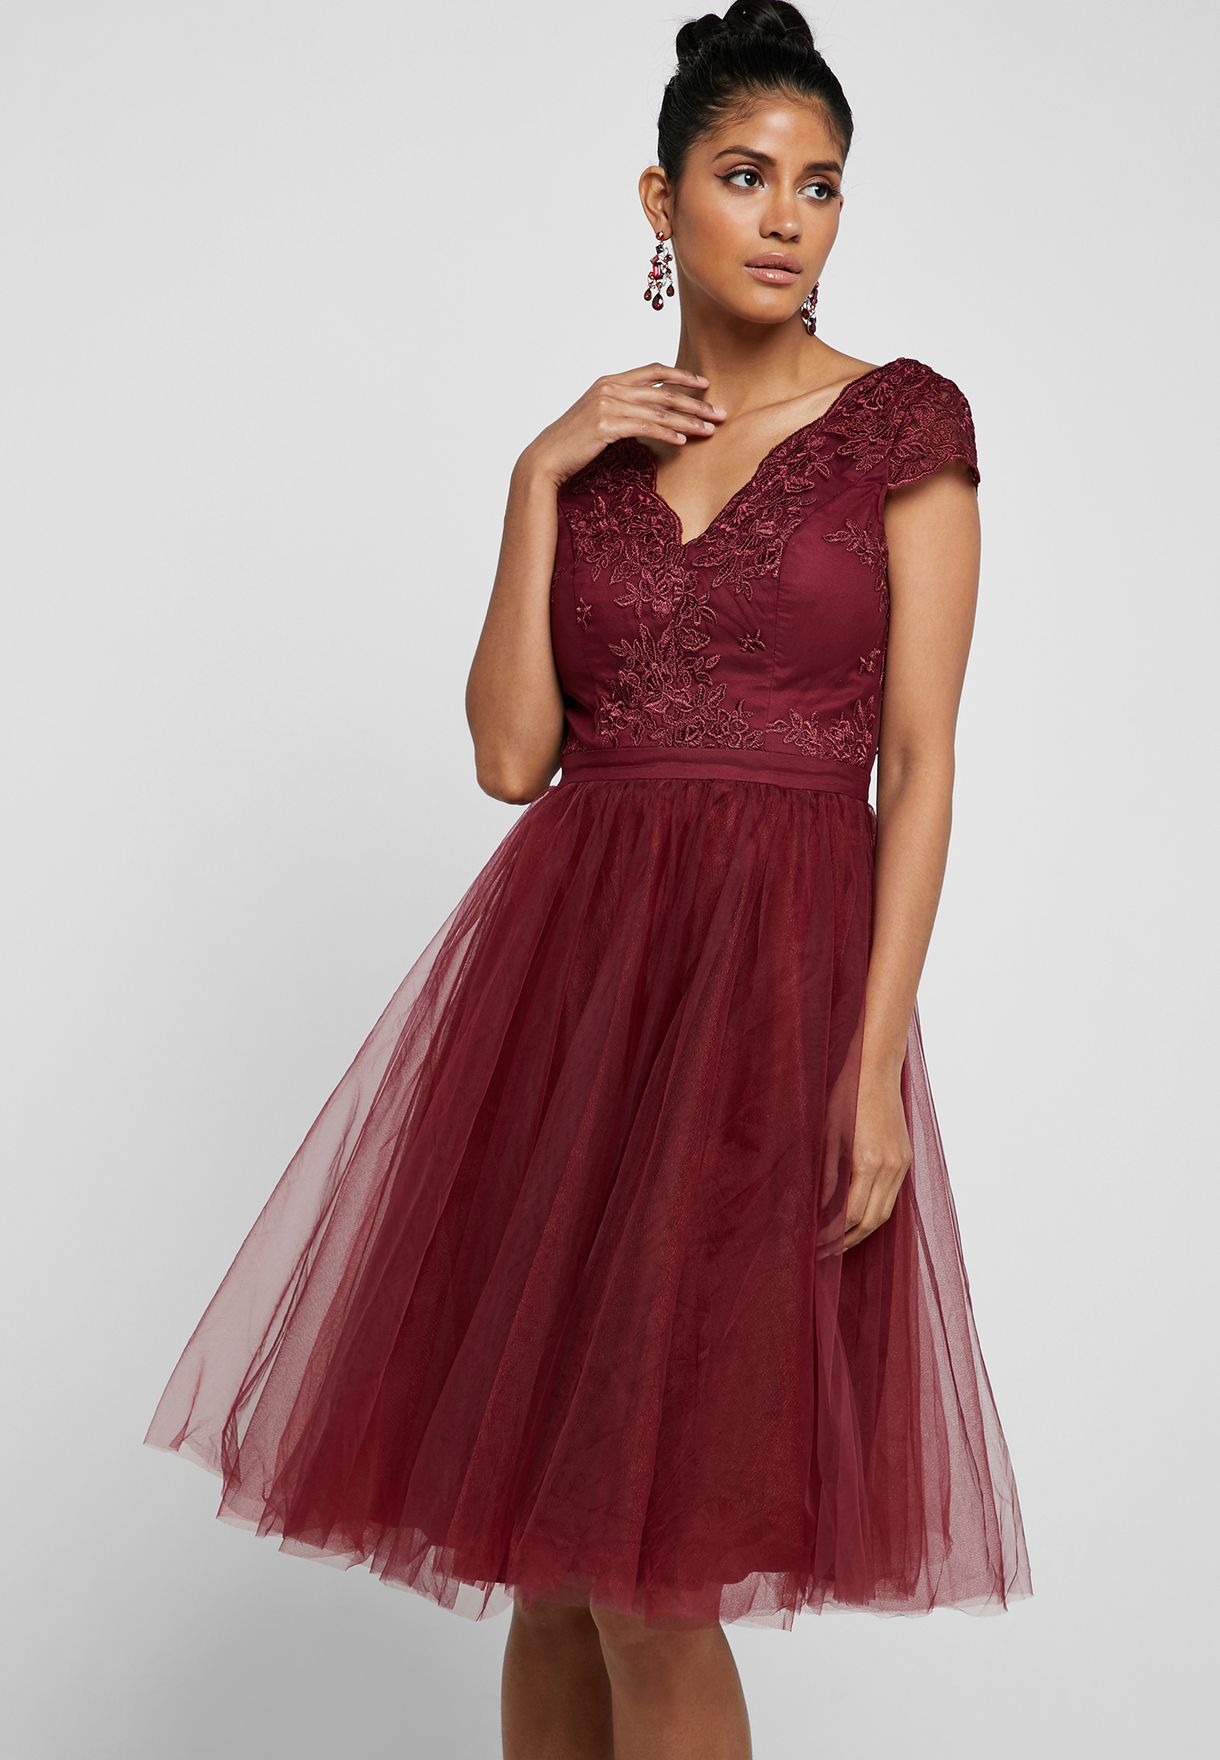 Embroidered Top Tulle Skirt Dress